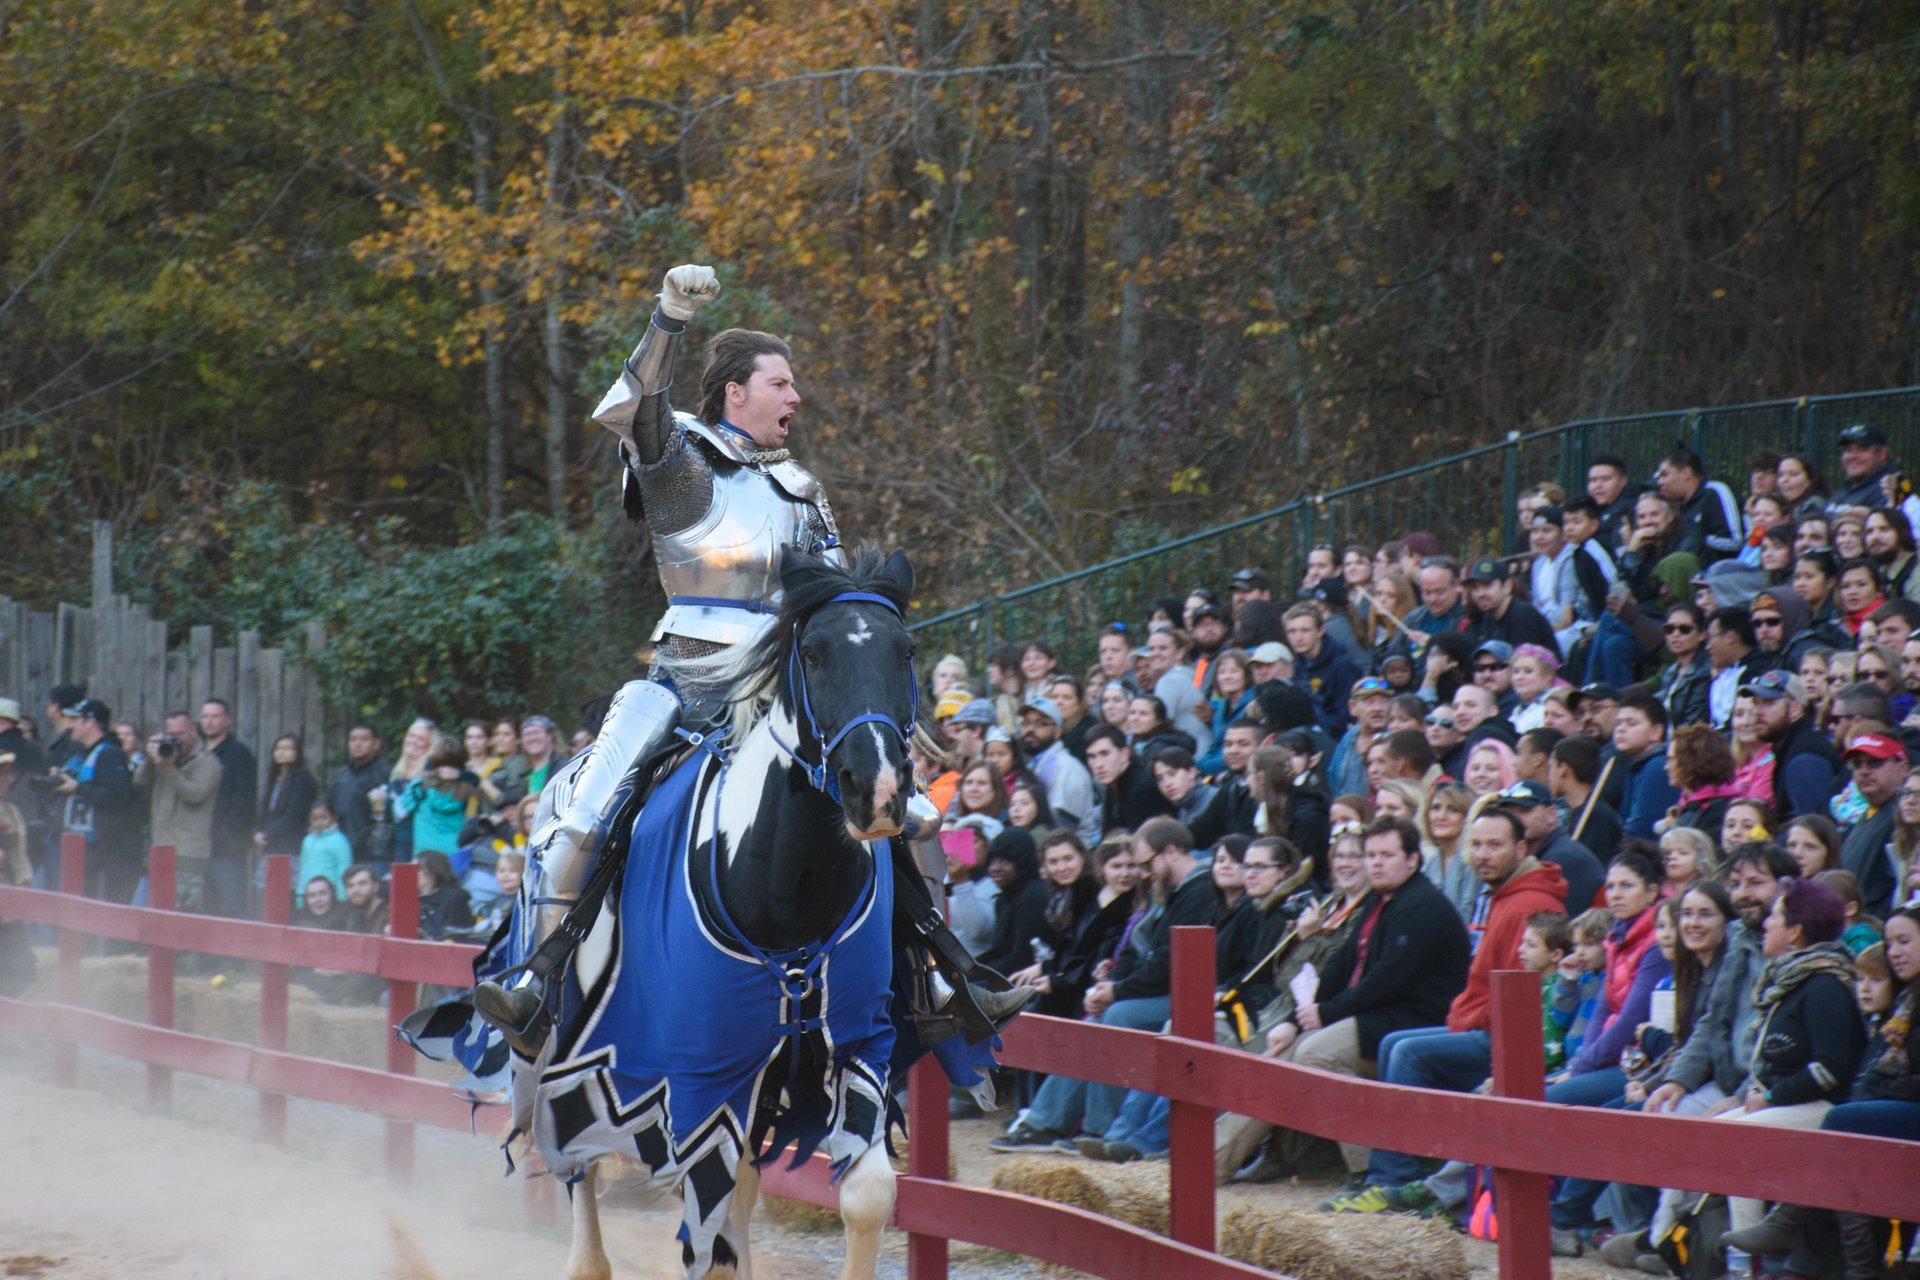 Best time for Carolina Renaissance Festival in North Carolina 2020